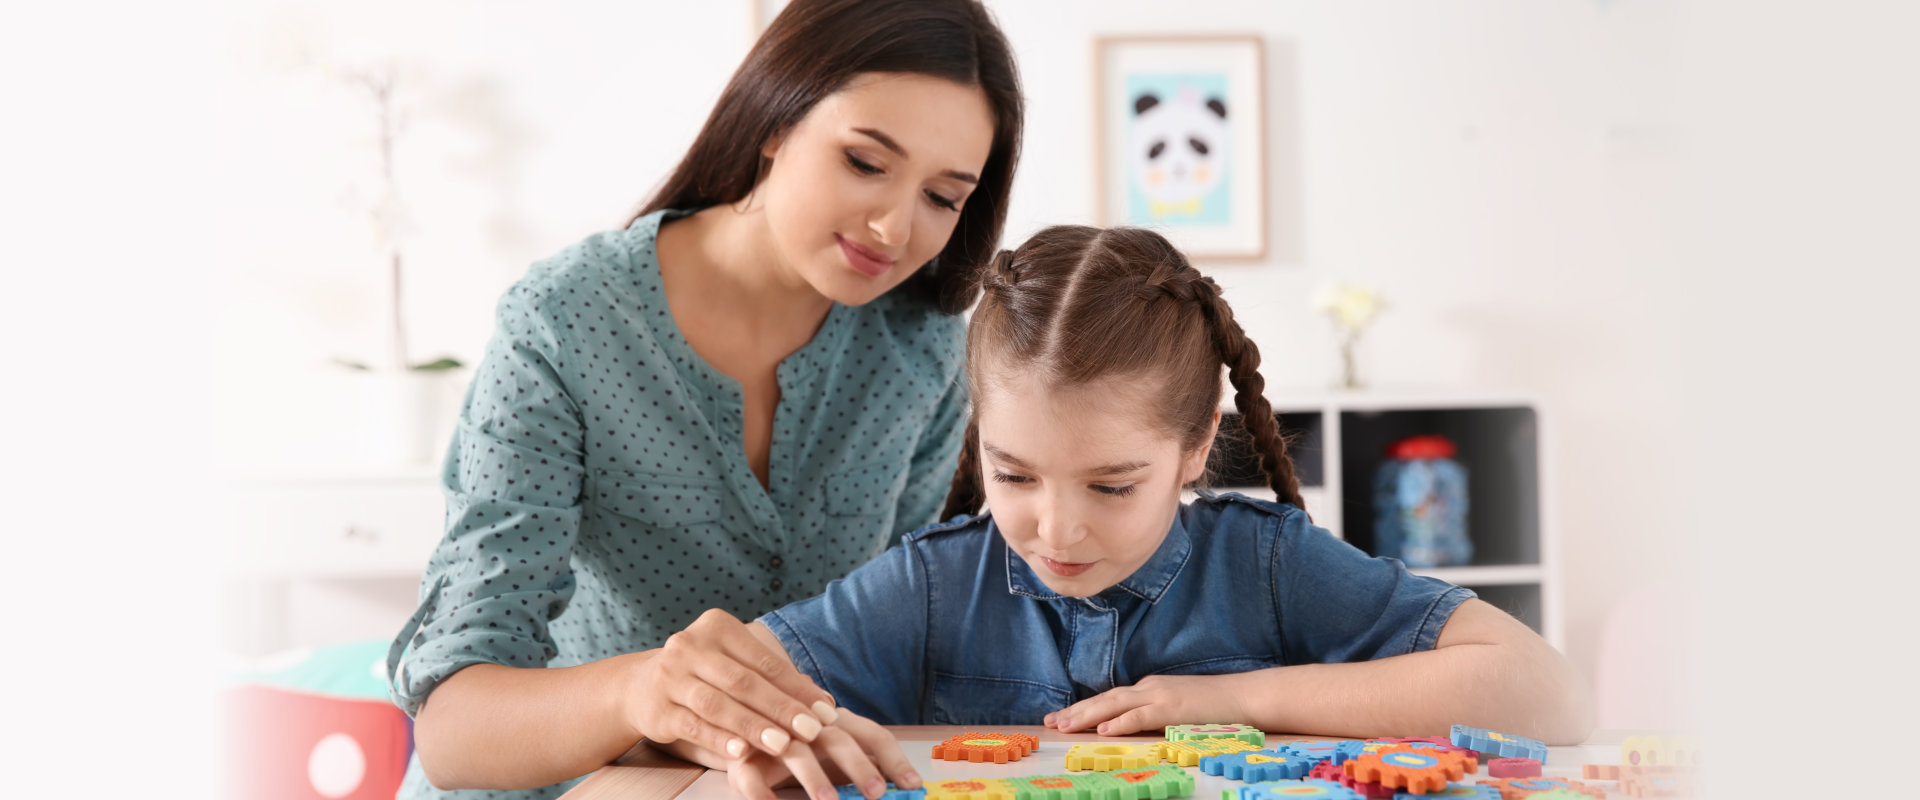 Young woman and little girl with autistic disorder playing at home